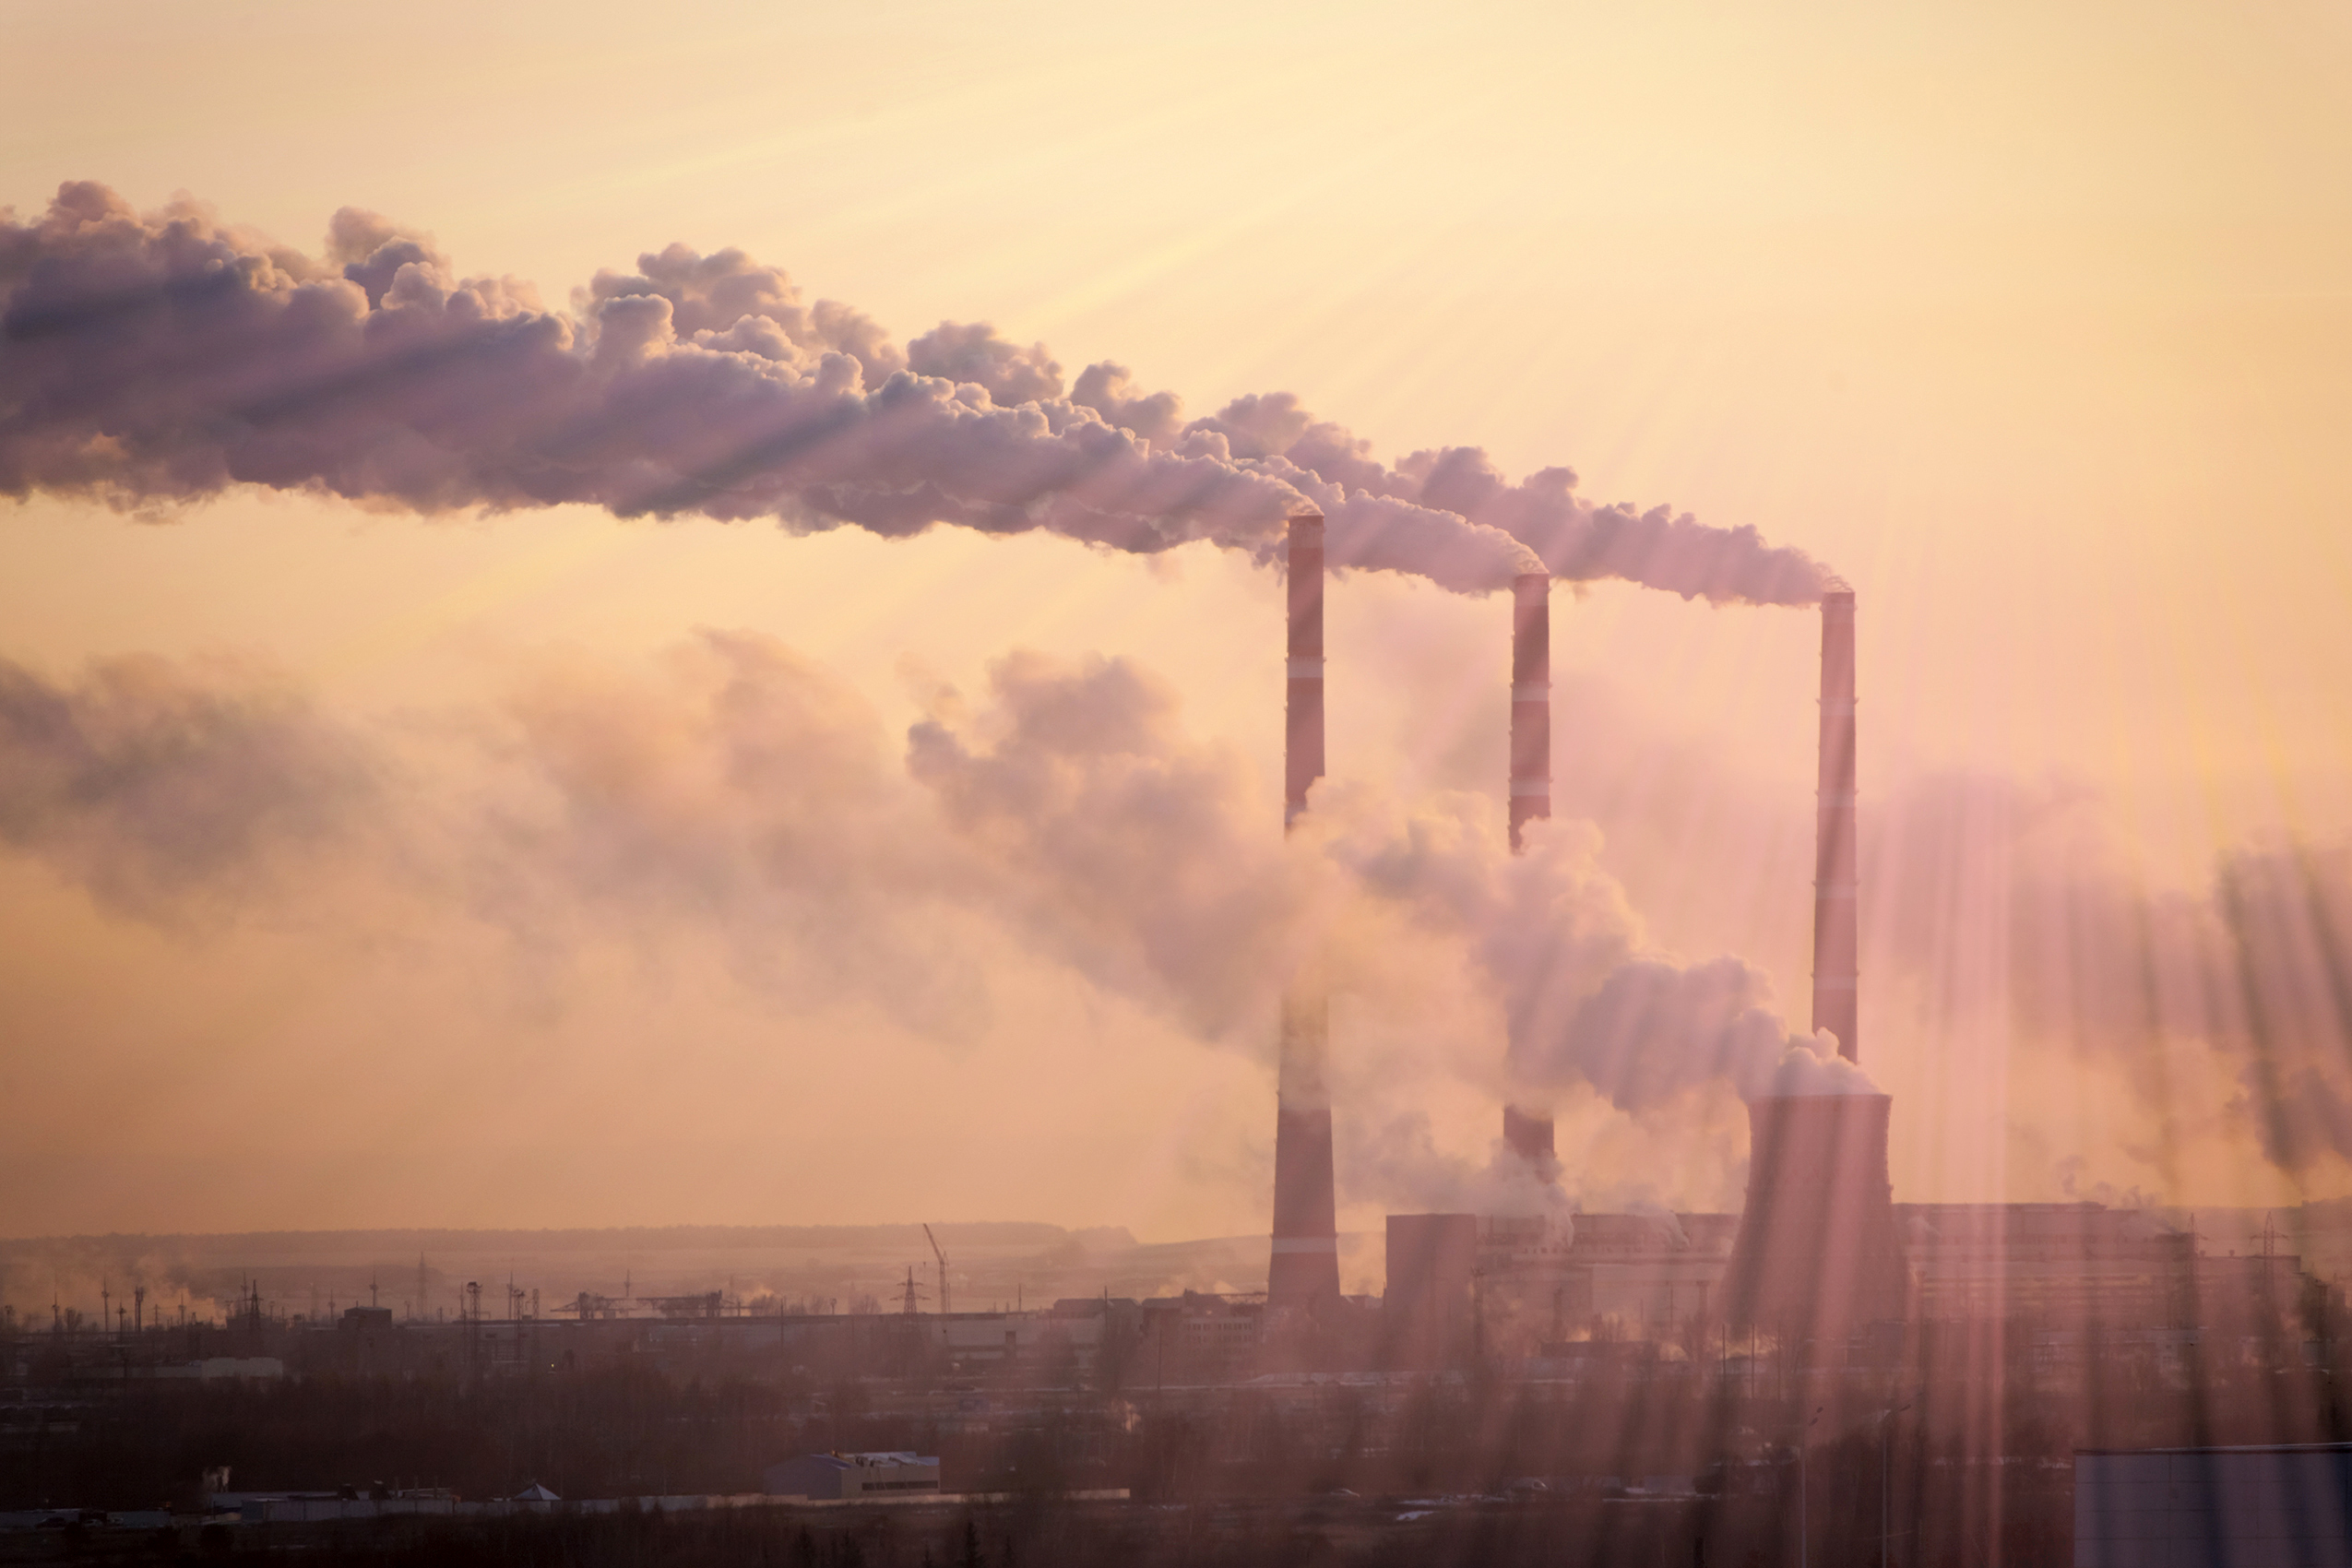 Greenhouse gas emissions can damage the environment.